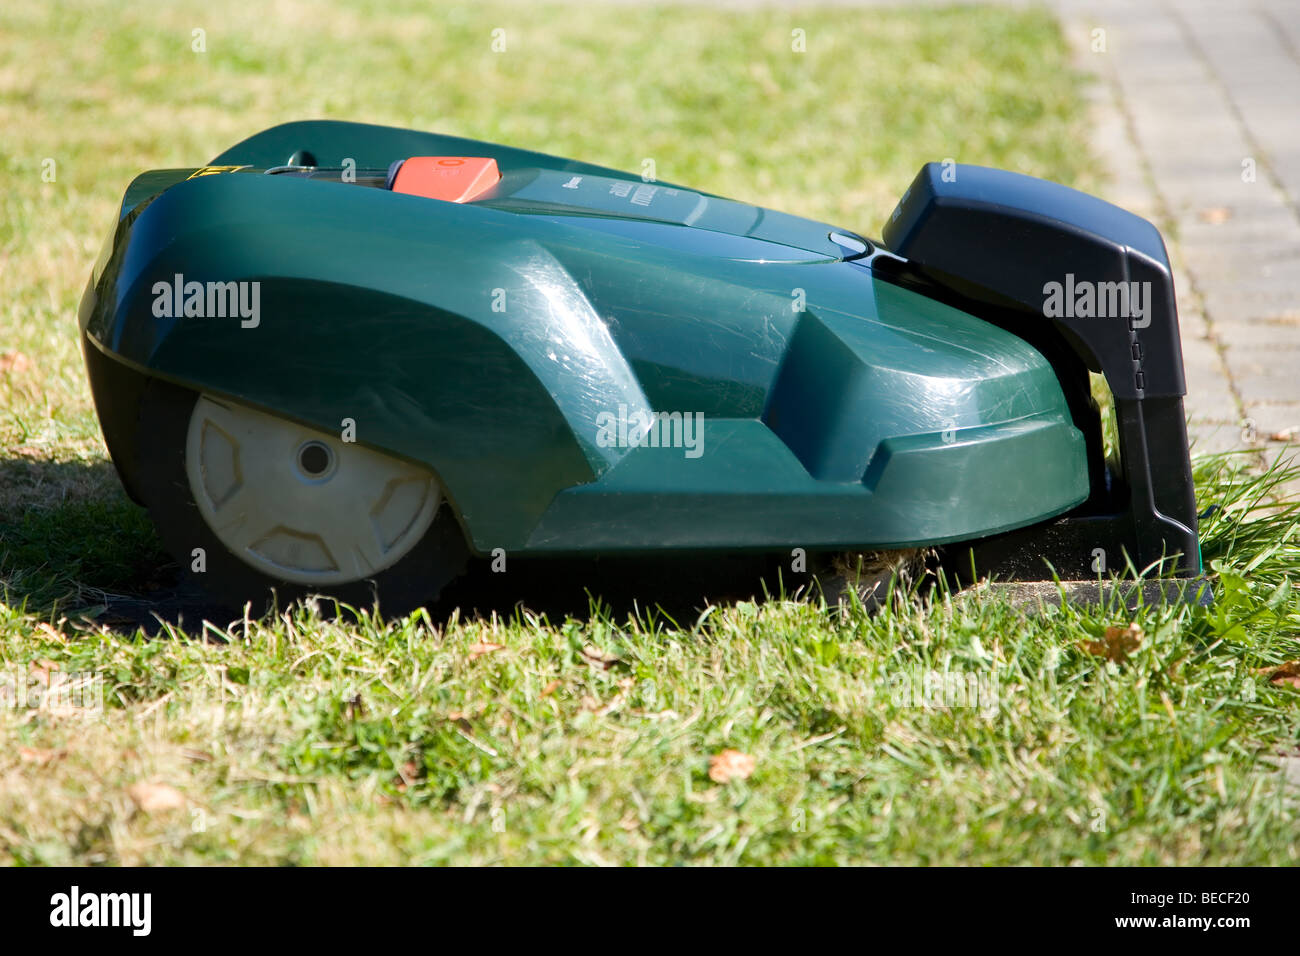 Green automatic robot lawnmower docked in its charging station near a patio, side view - Stock Image